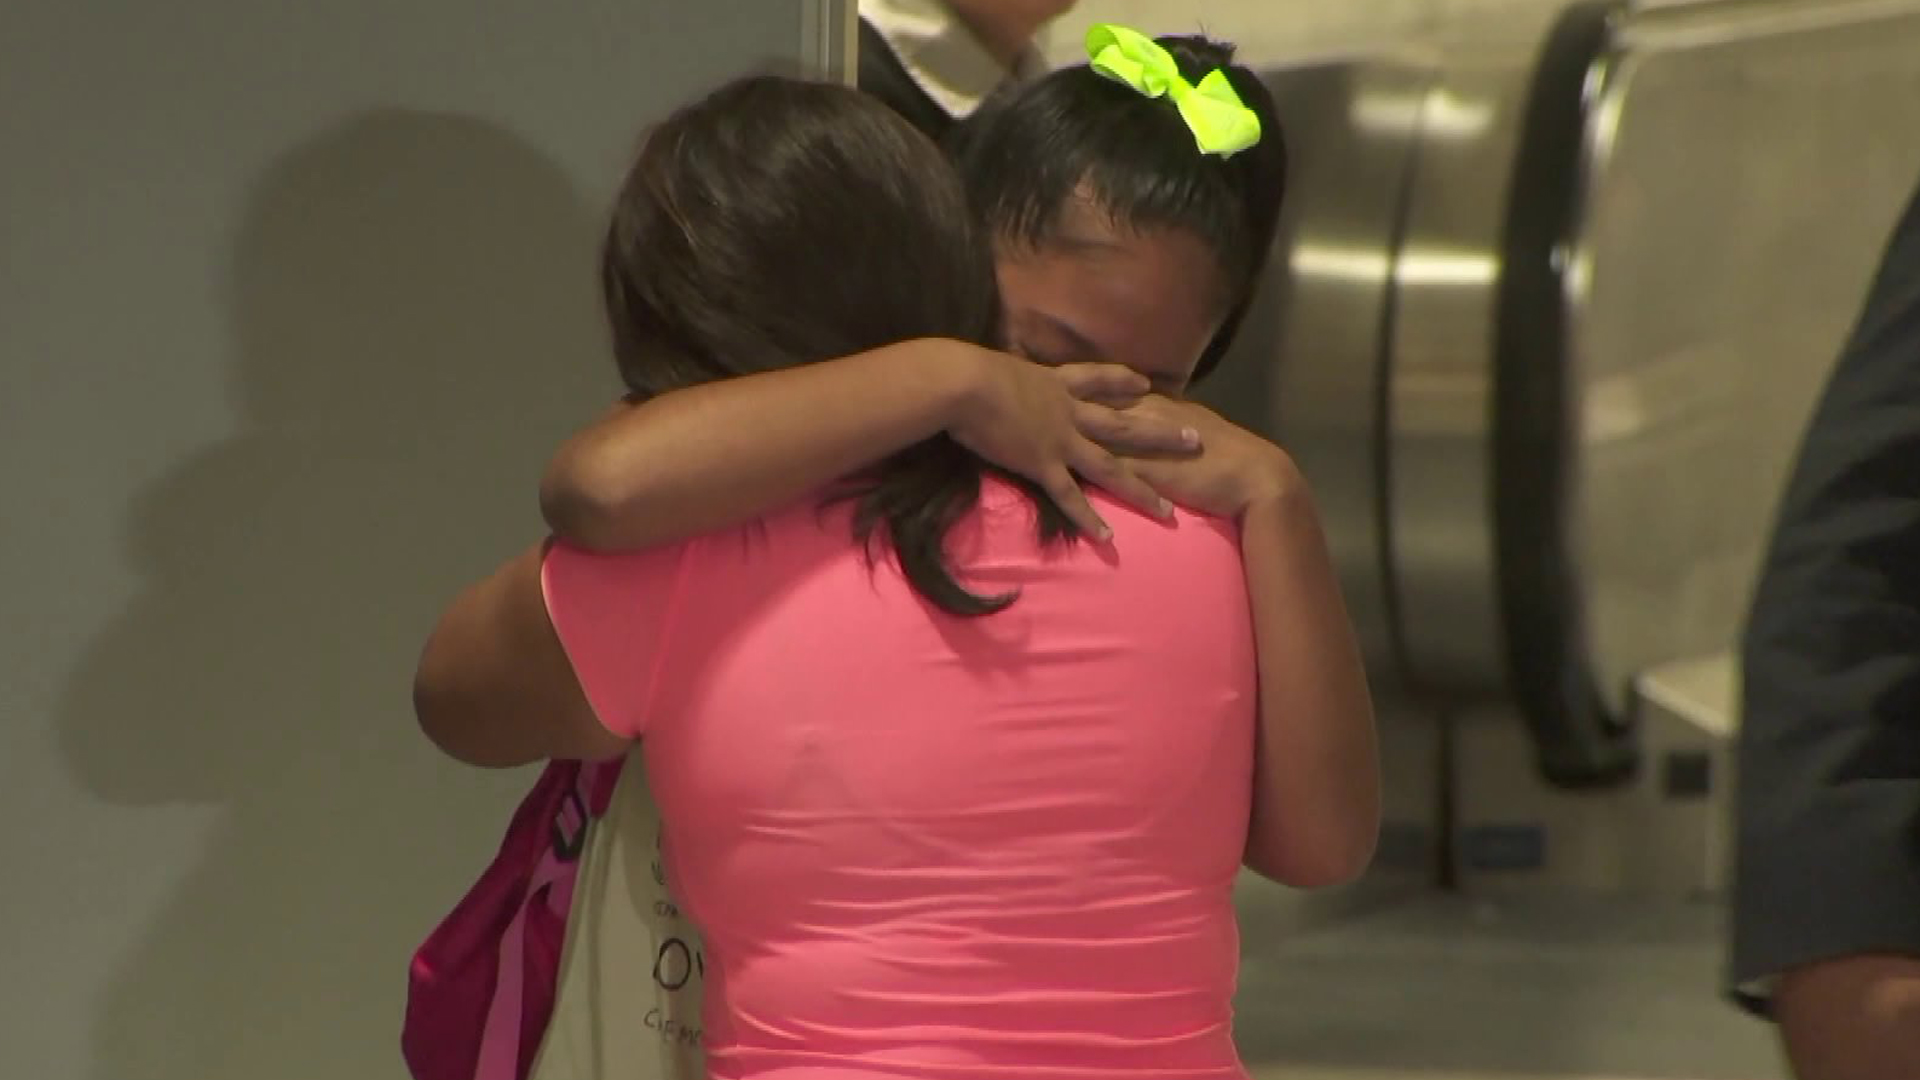 Perla De Velasquez hugs her 12-year-old daughter, Yoselin, tightly as the two are reunited at LAX on July 1, 2018, after more than a month apart. They had been separated by federal immigration authorities. (Credit KTLA)